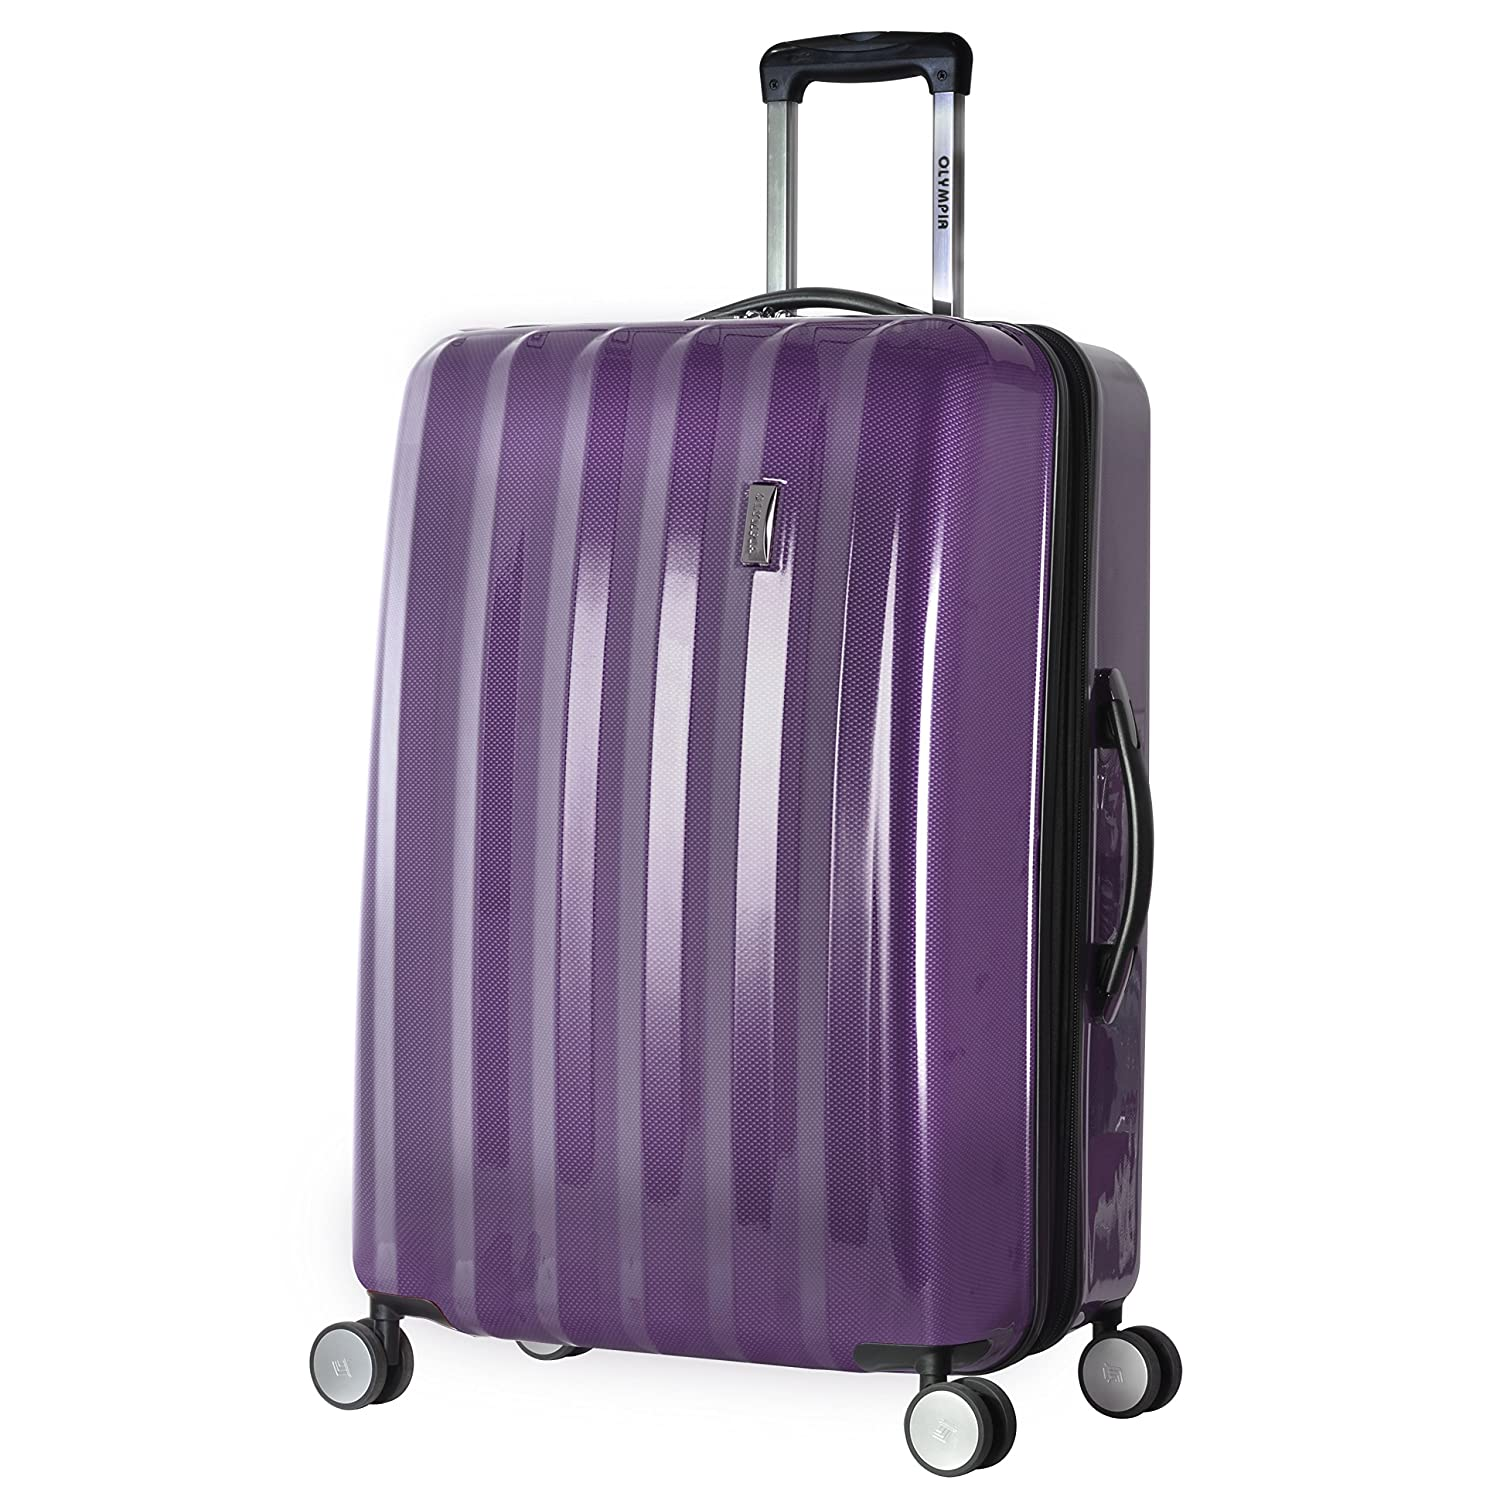 ee6c43834 Amazon.com | Olympia Titan 3 Piece Expandable Polycarbonate Hard Case  Spinner Set, Purple, One Size | Suitcases